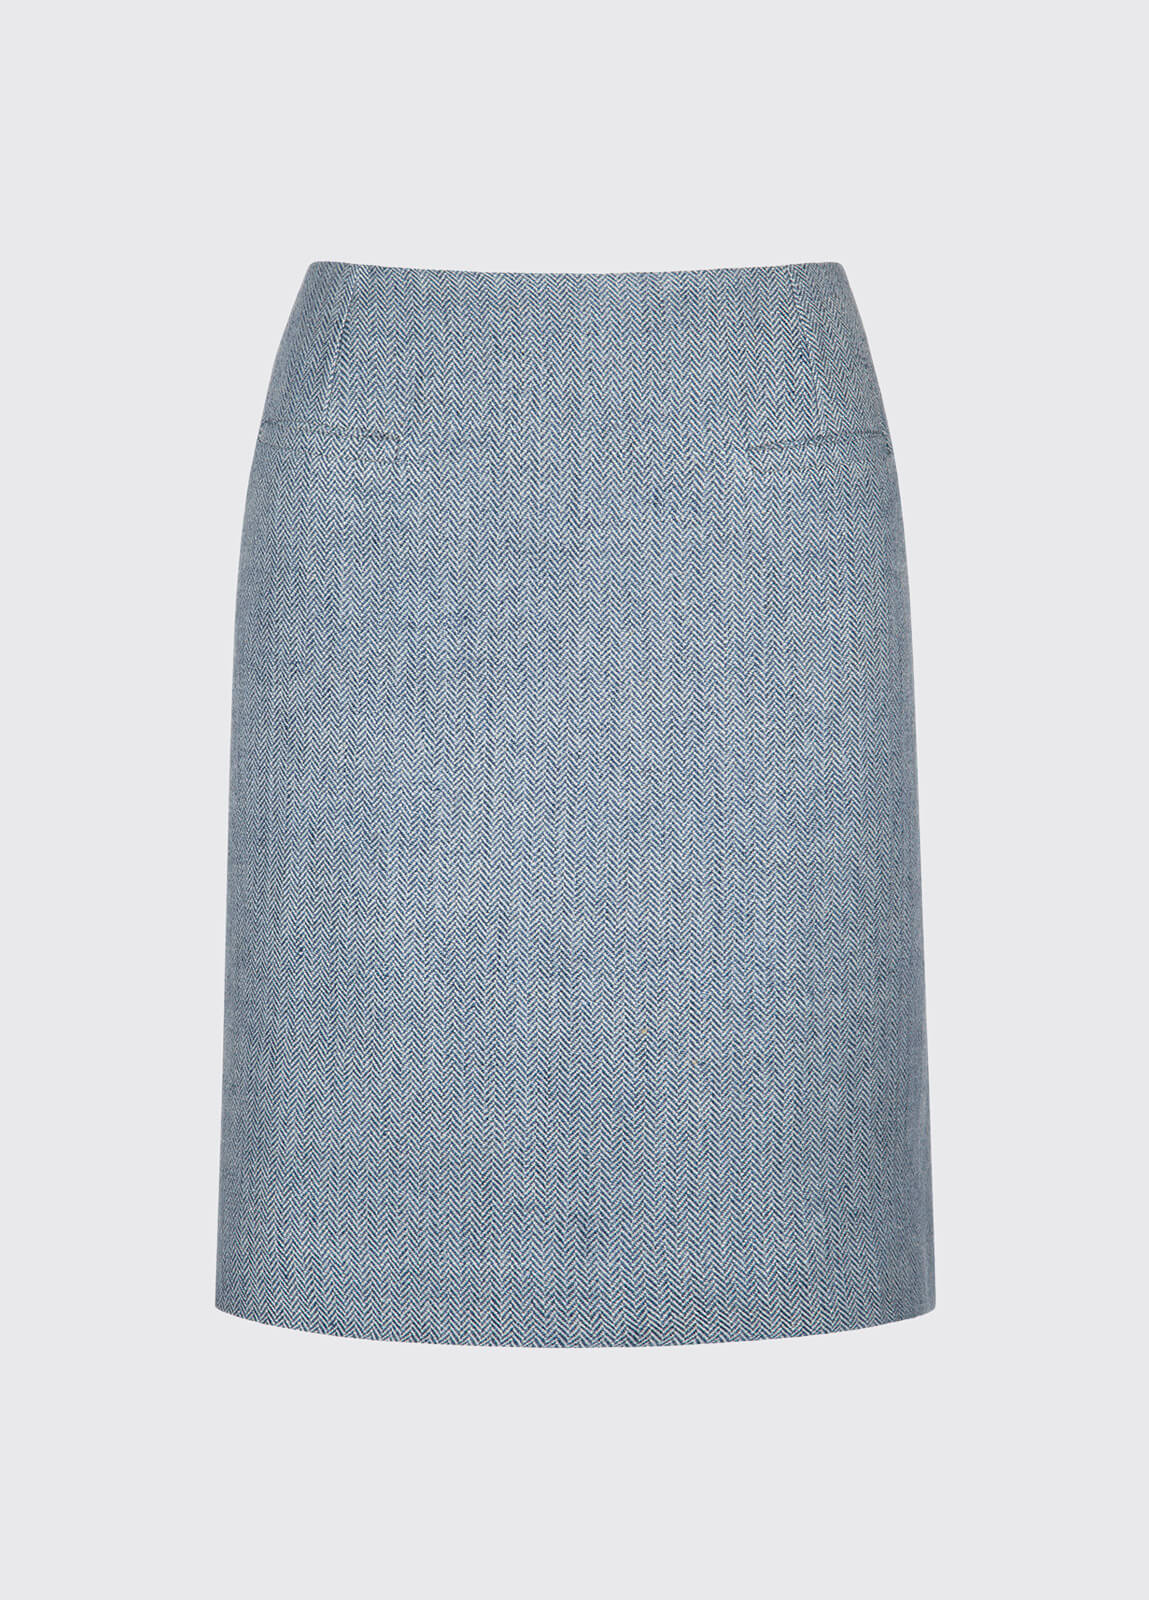 Sunflower Linen Ladies Skirt - Blue